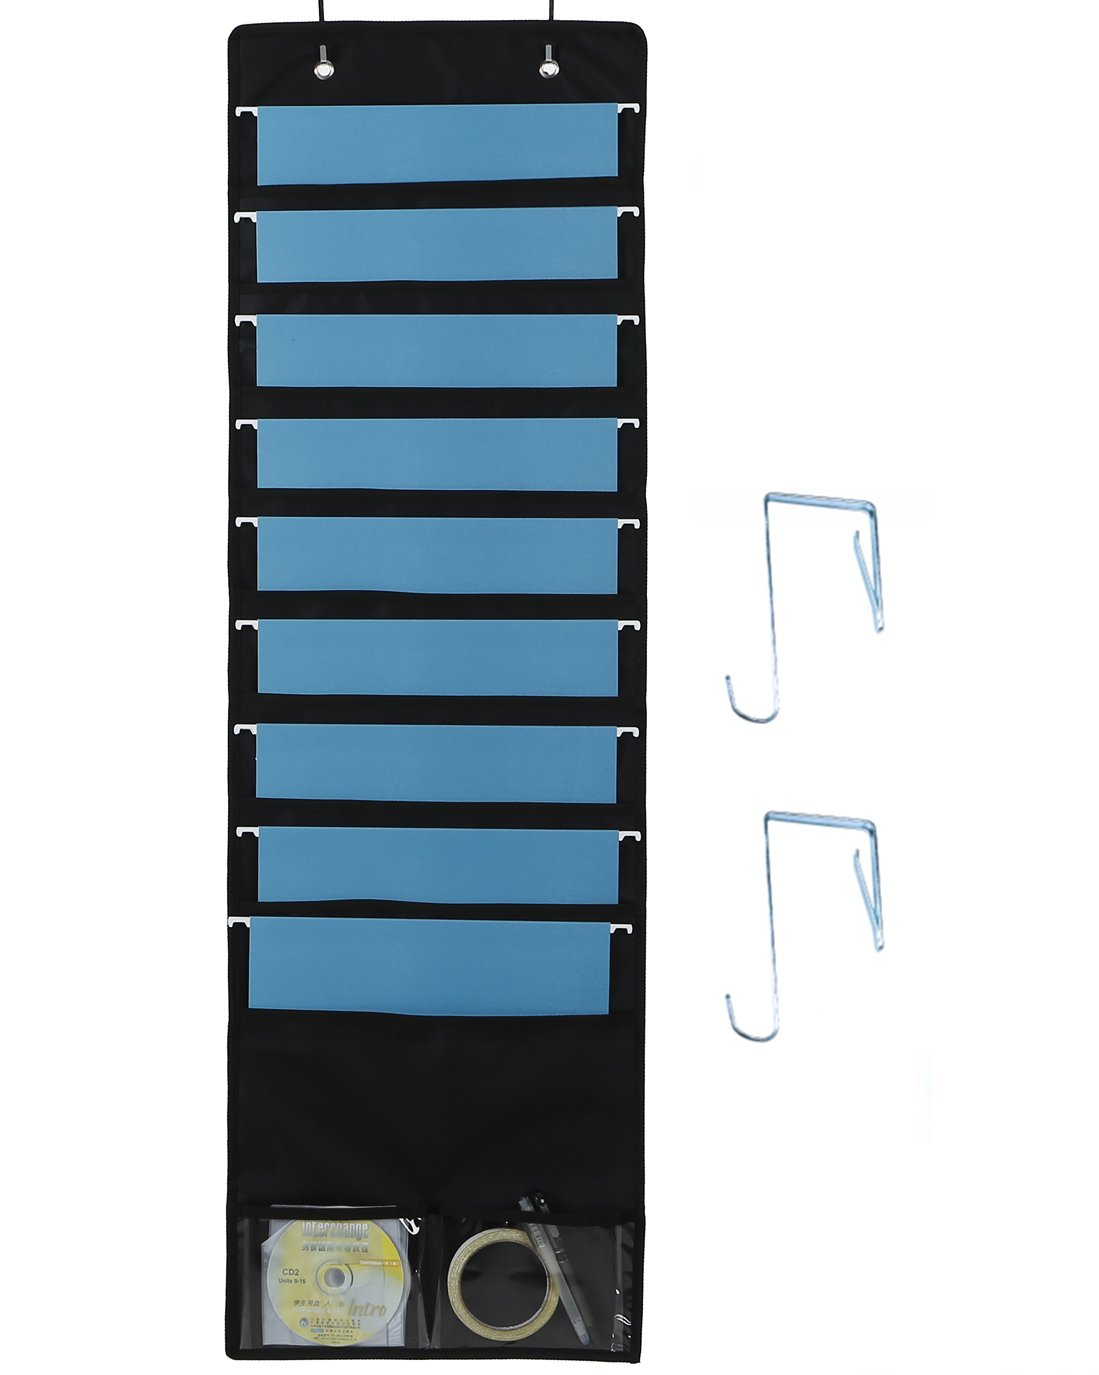 600D Oxford Hanging File/Folder Organizer, 9 Large Pockets + 2 Small Pockets + 2 Hangers - Perfect for Home, School Chart Organization, Office Bill Filing, Mail sorting, Wall or Over Door Mount(Black)